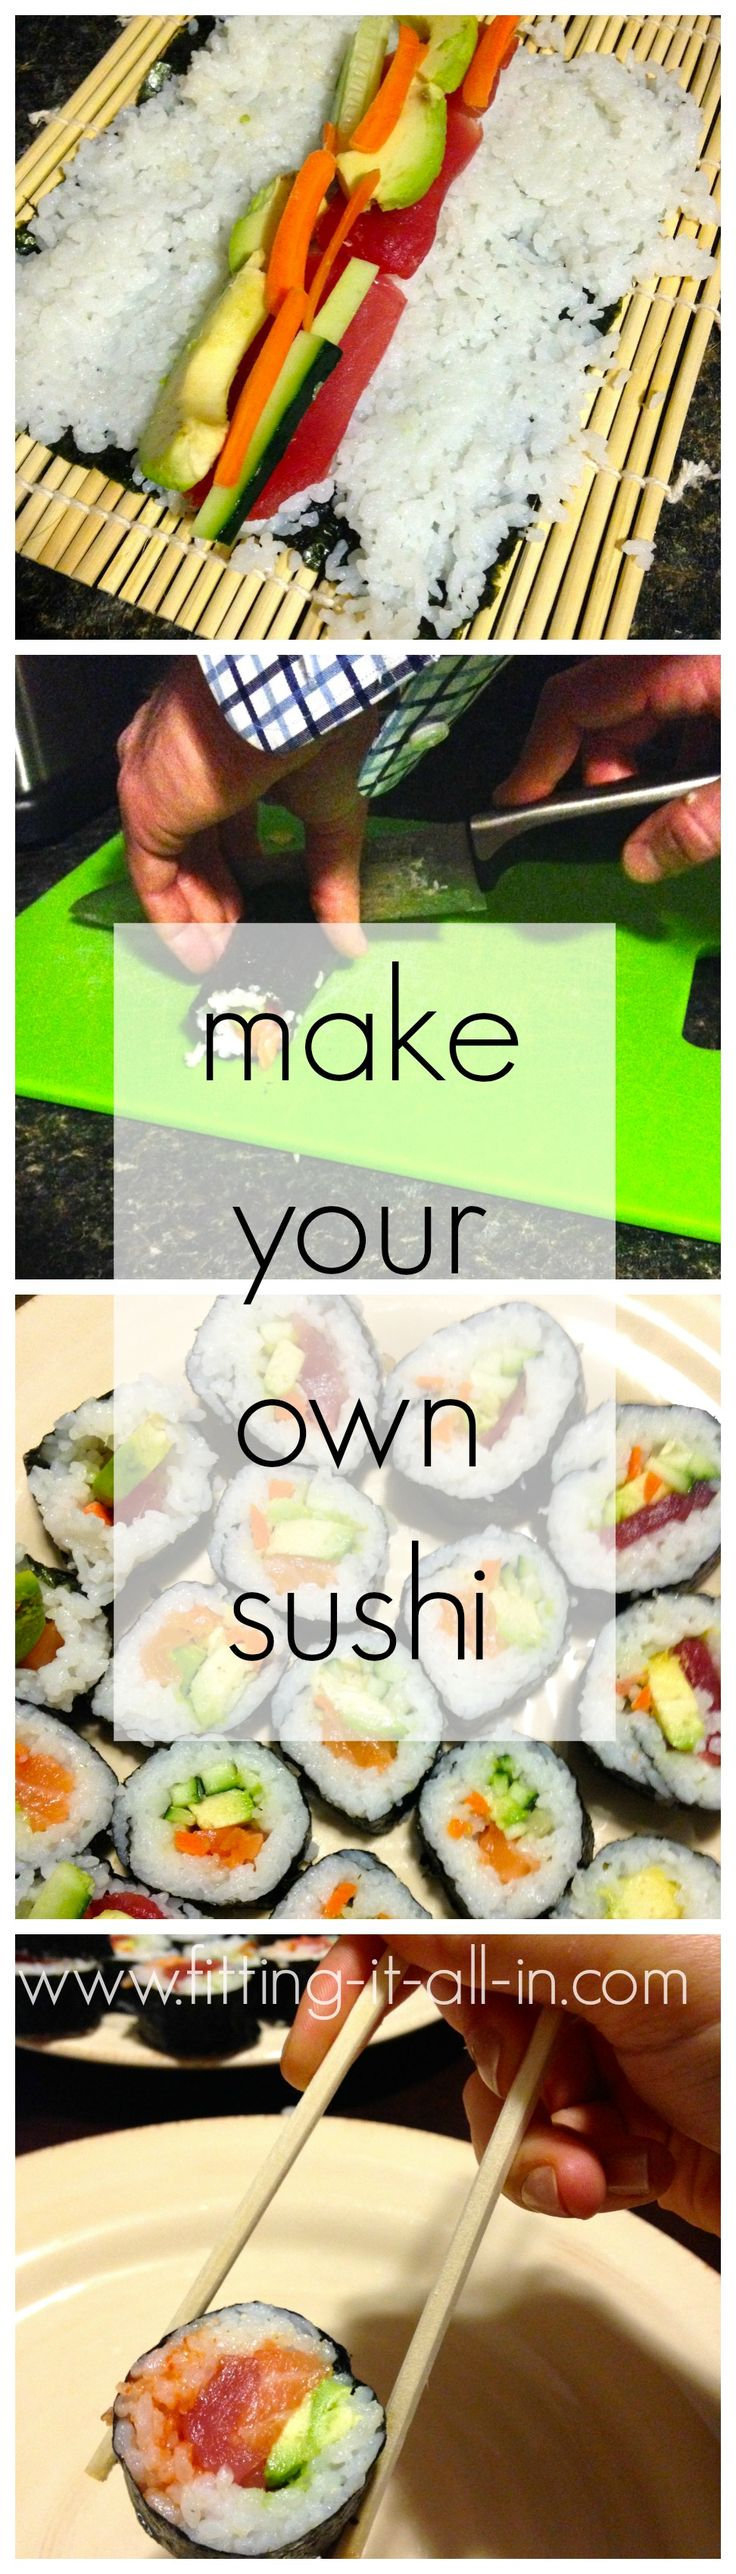 MAKE YOUR OWN SUSHI 1